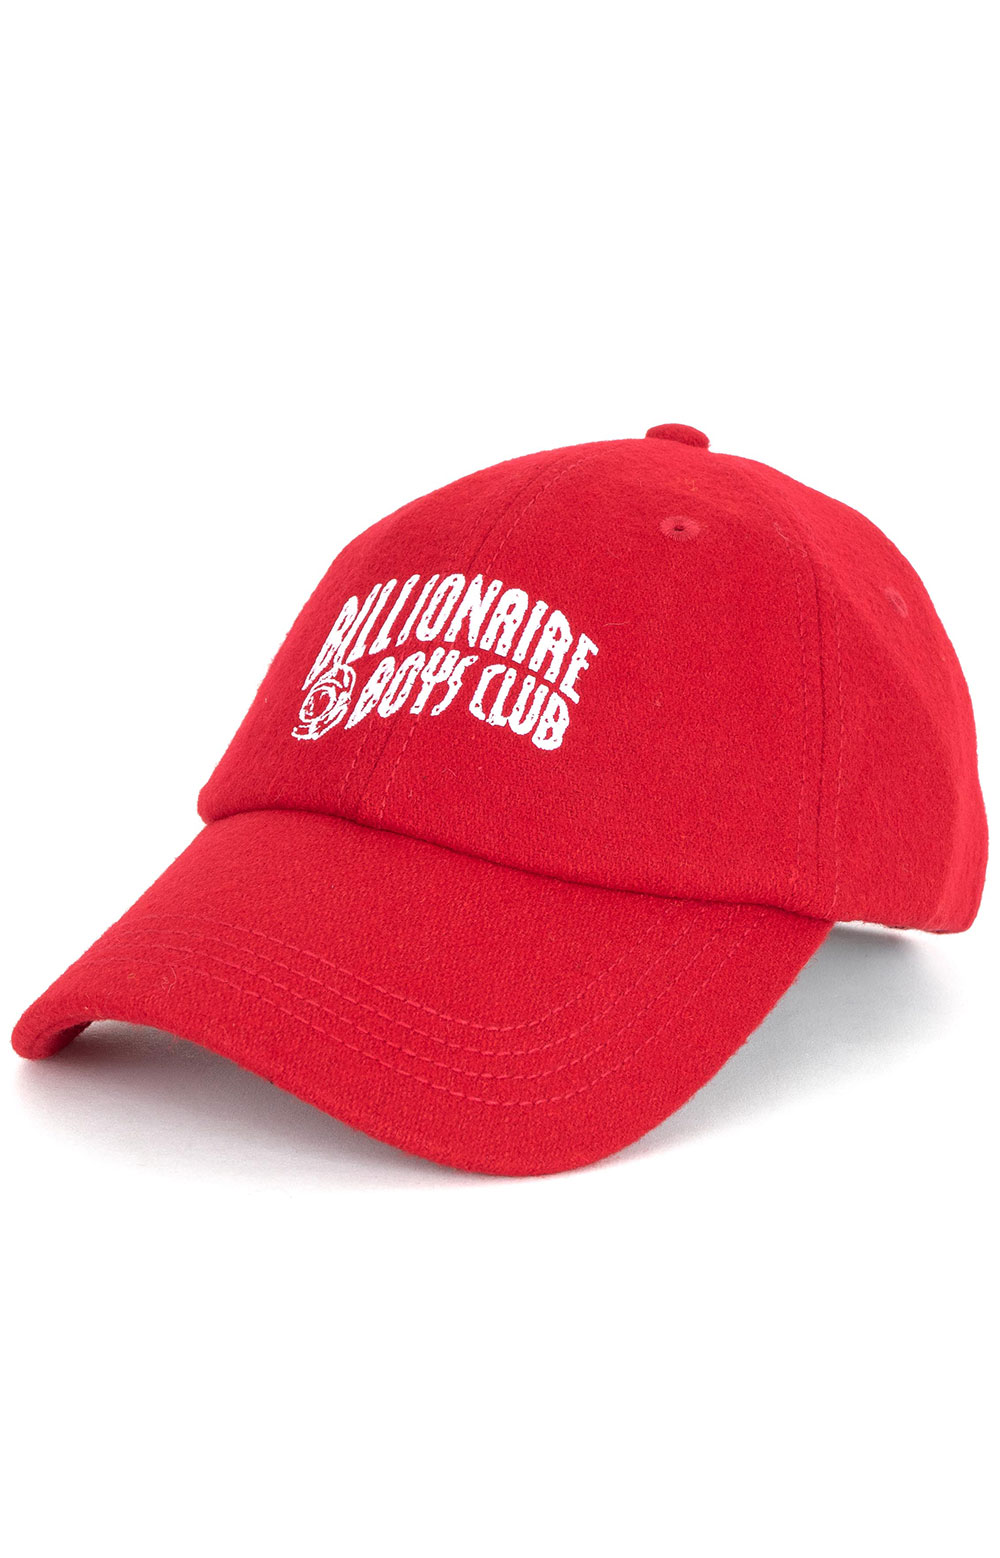 fe02d795a8e BB Arch Classic Dad Hat - Tango Red